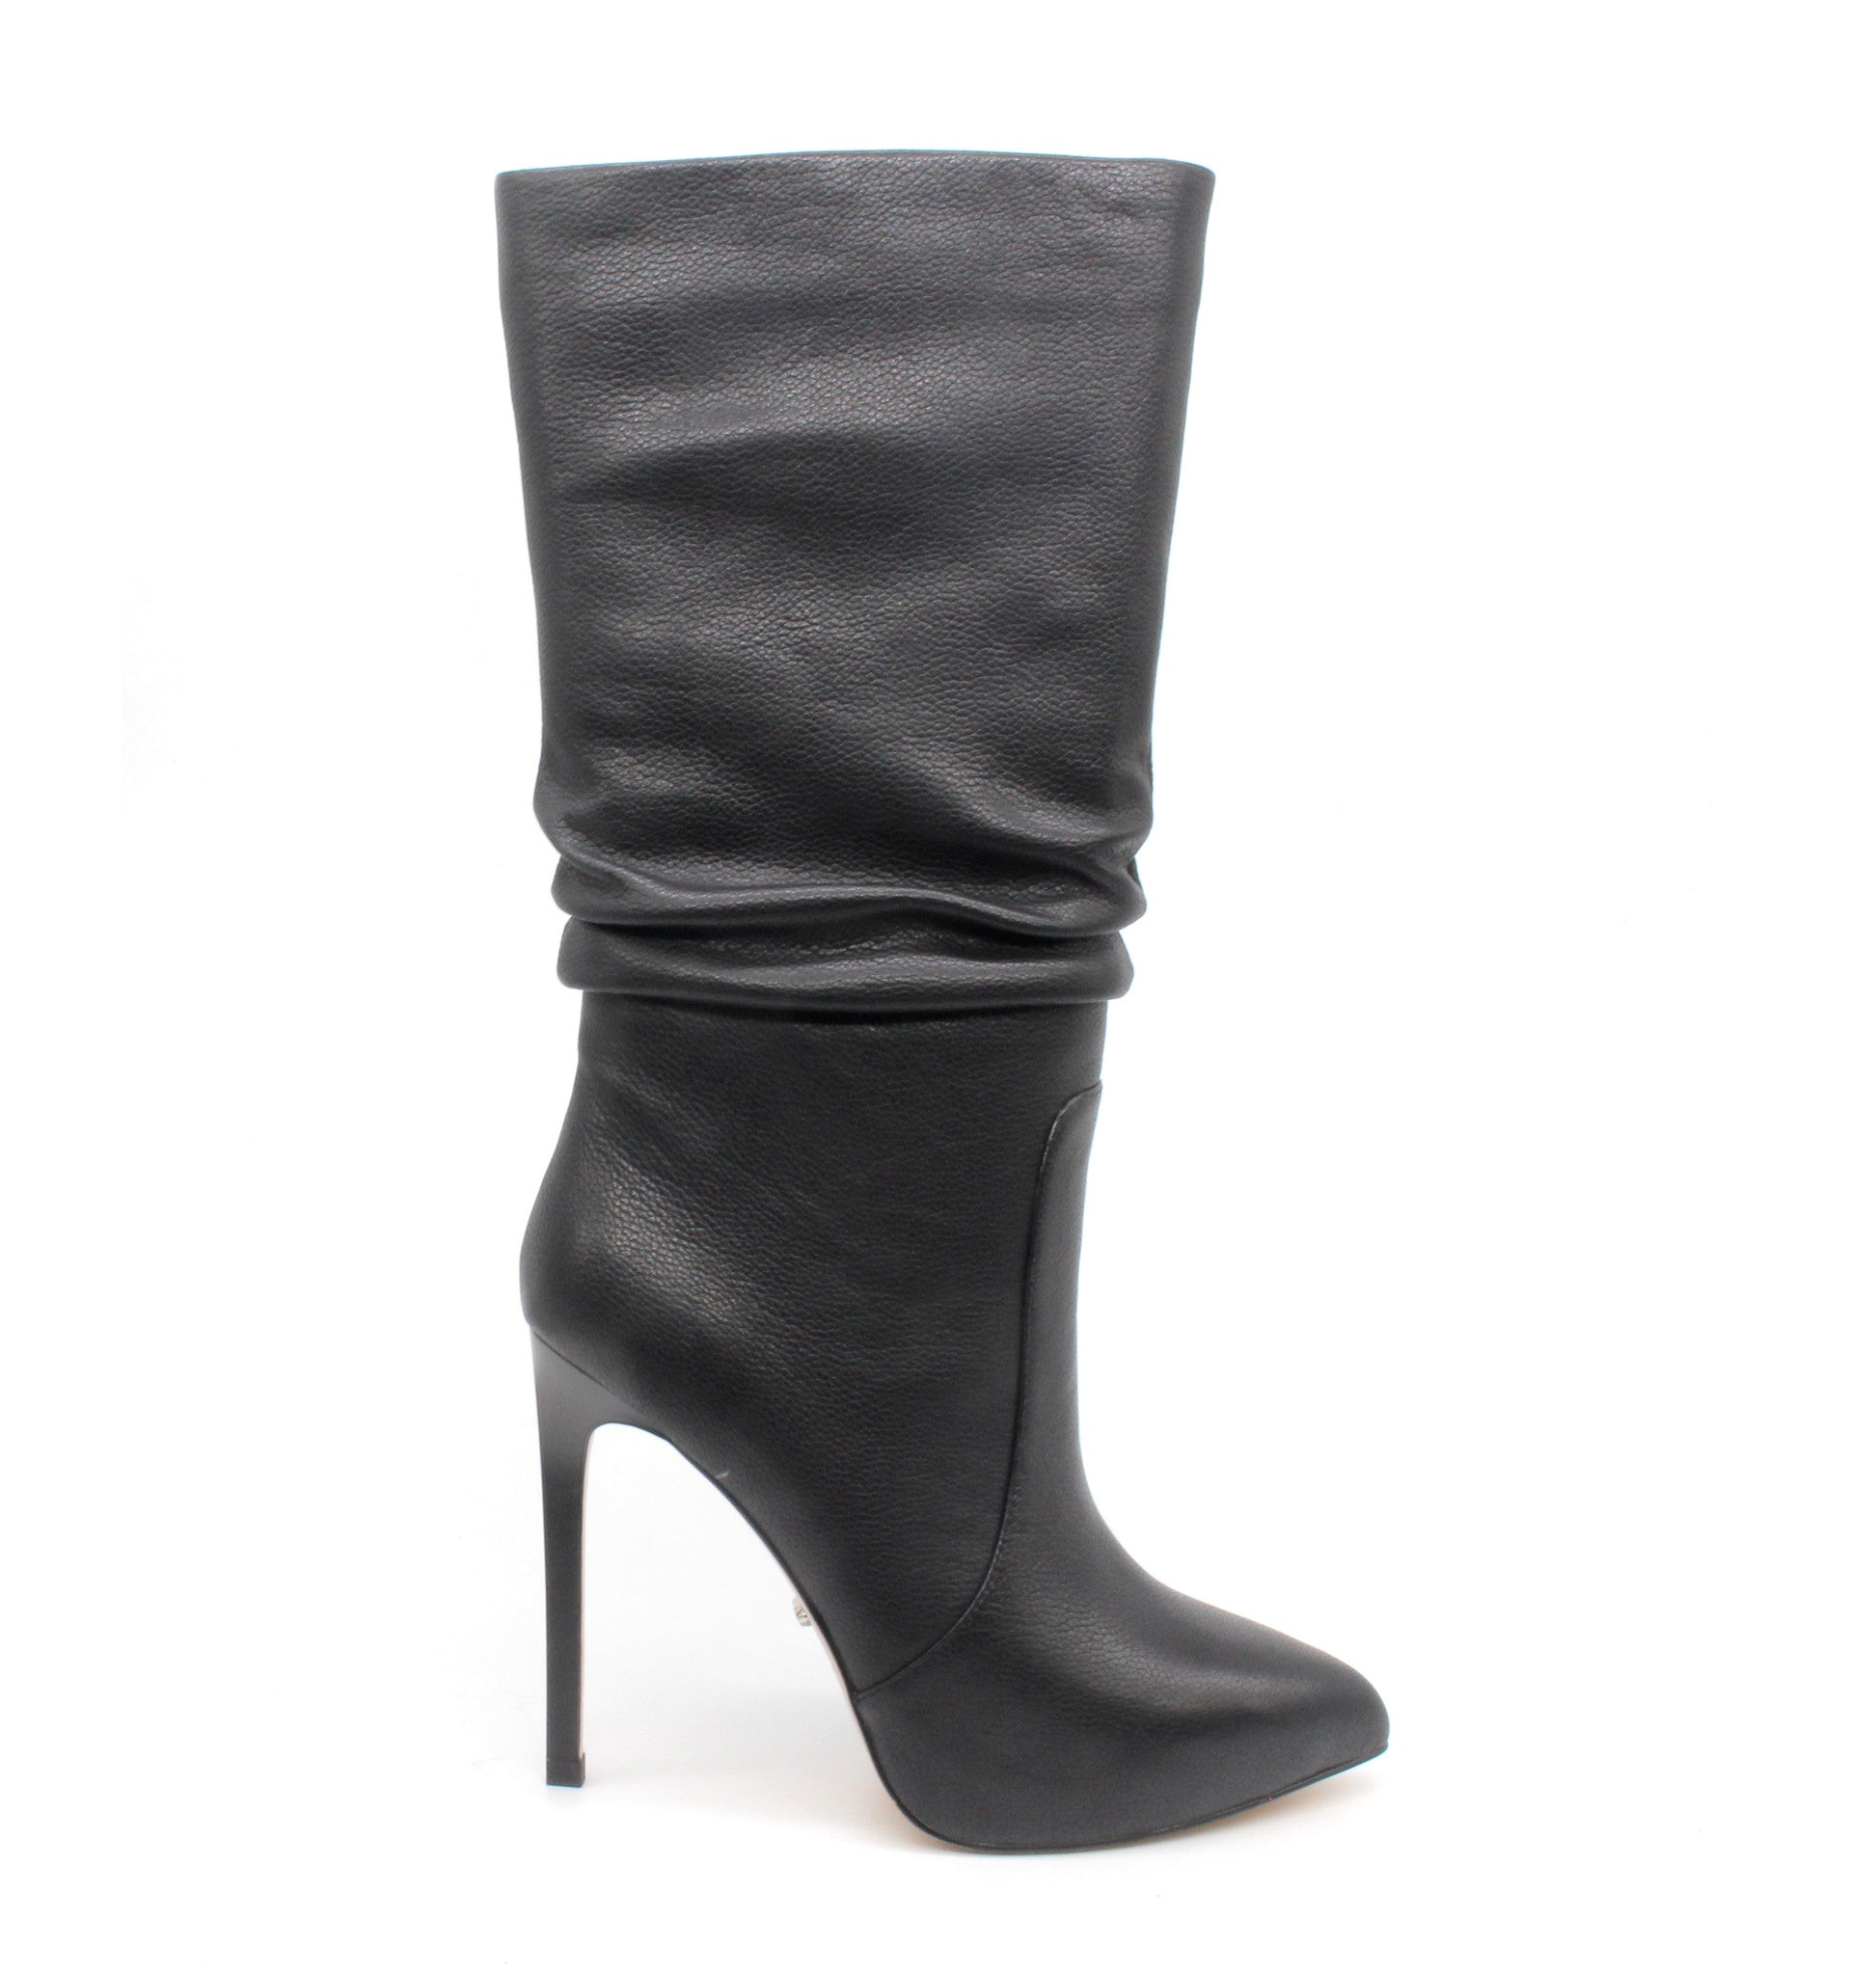 182d7450019 Black High Top Boots - 5 inch Leather Heels - Angelina Voloshina - AV Heels  ...